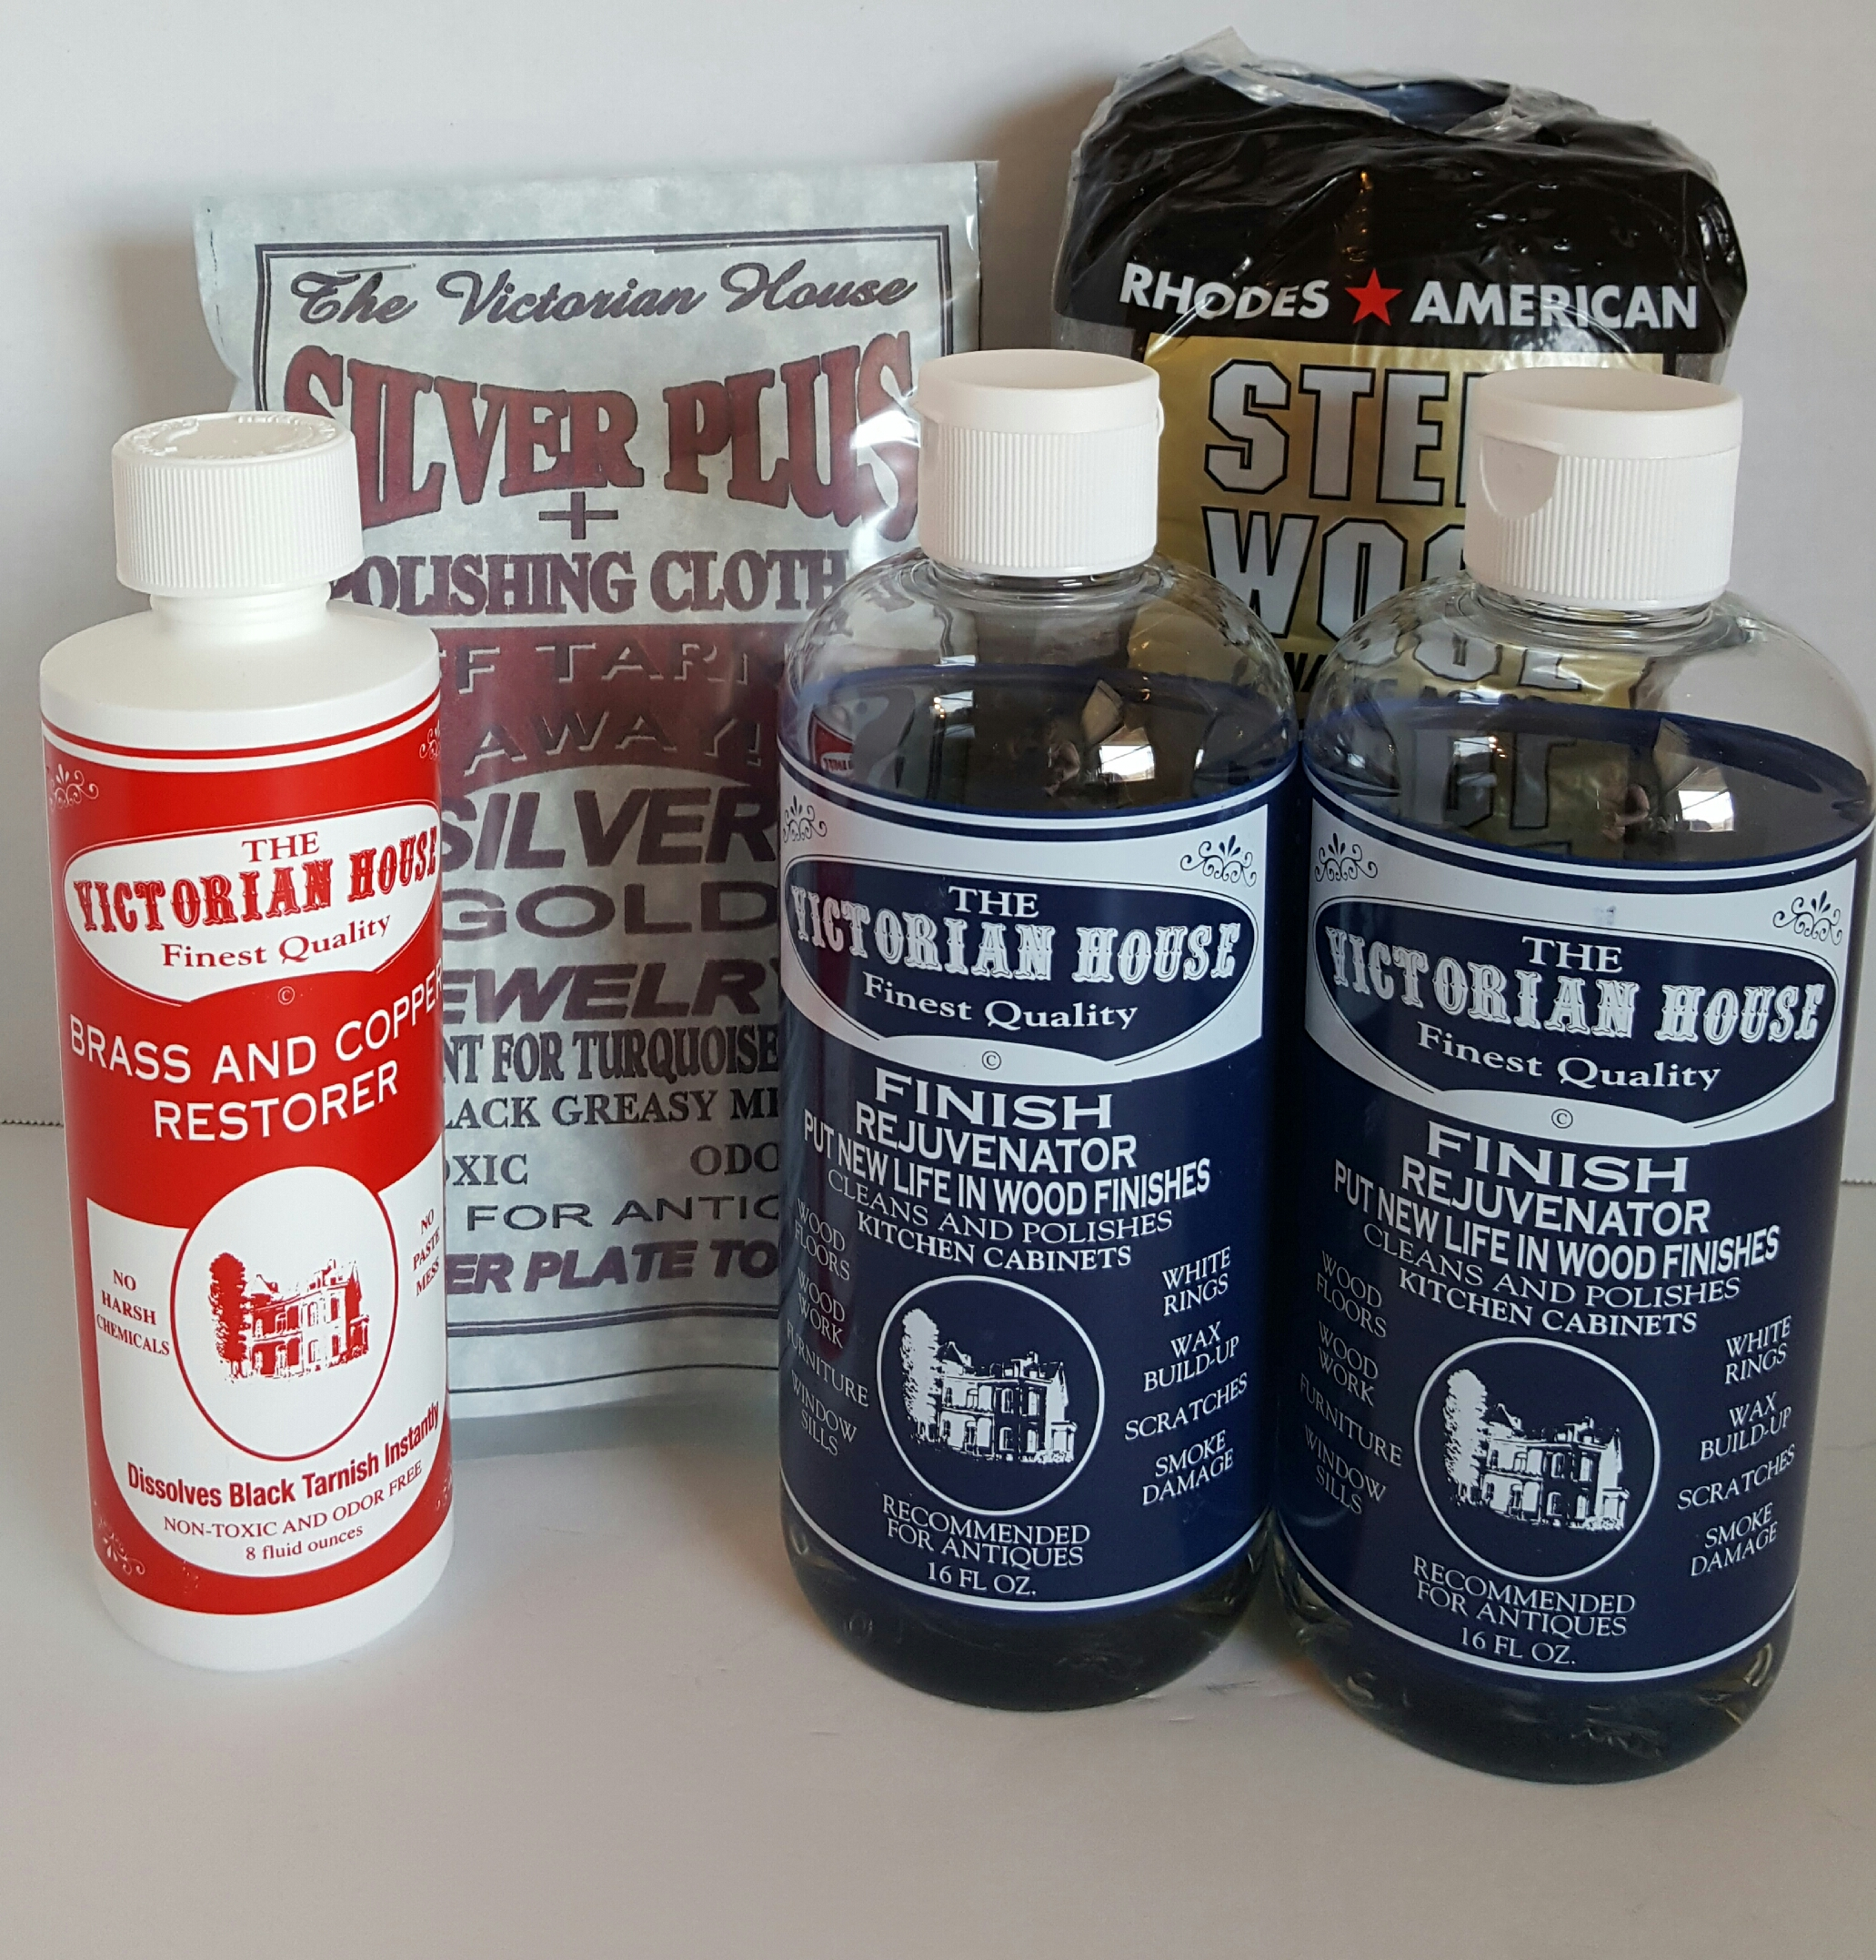 Kitchen Cabinet Furniture And Antique Cleaner And